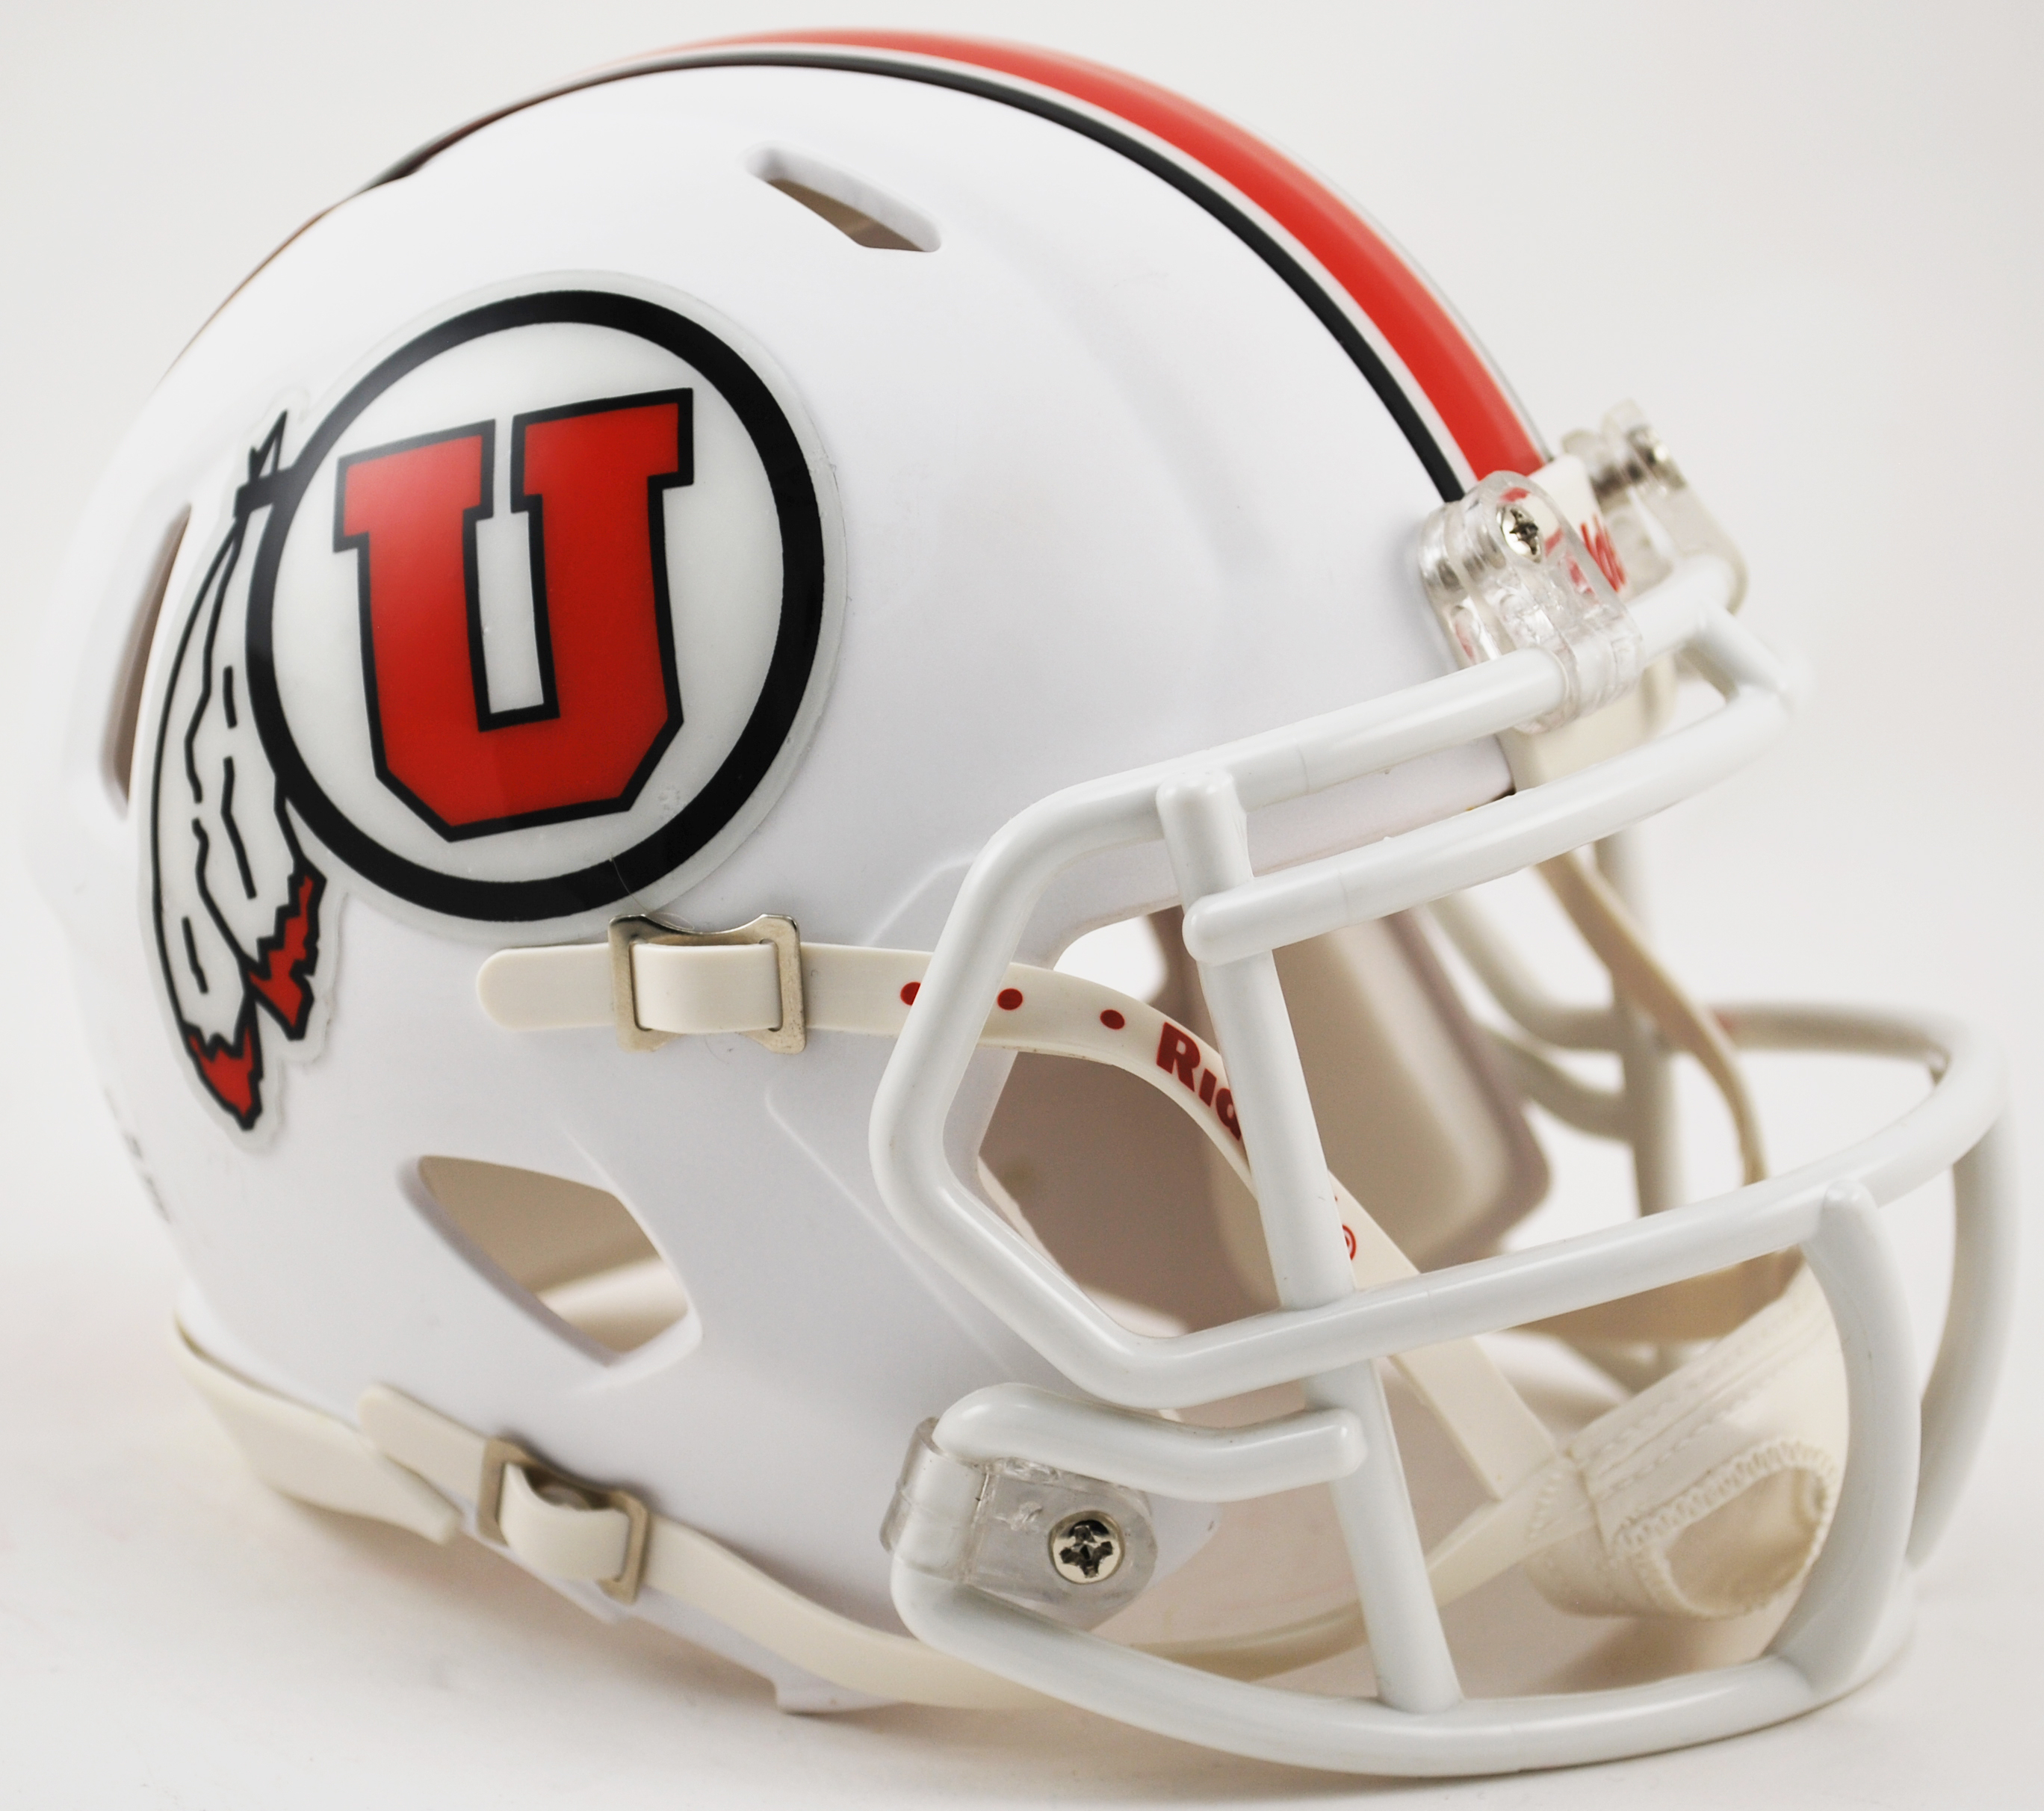 Utah Utes NCAA Mini Speed Football Helmet <B>Matte White 2015</B>